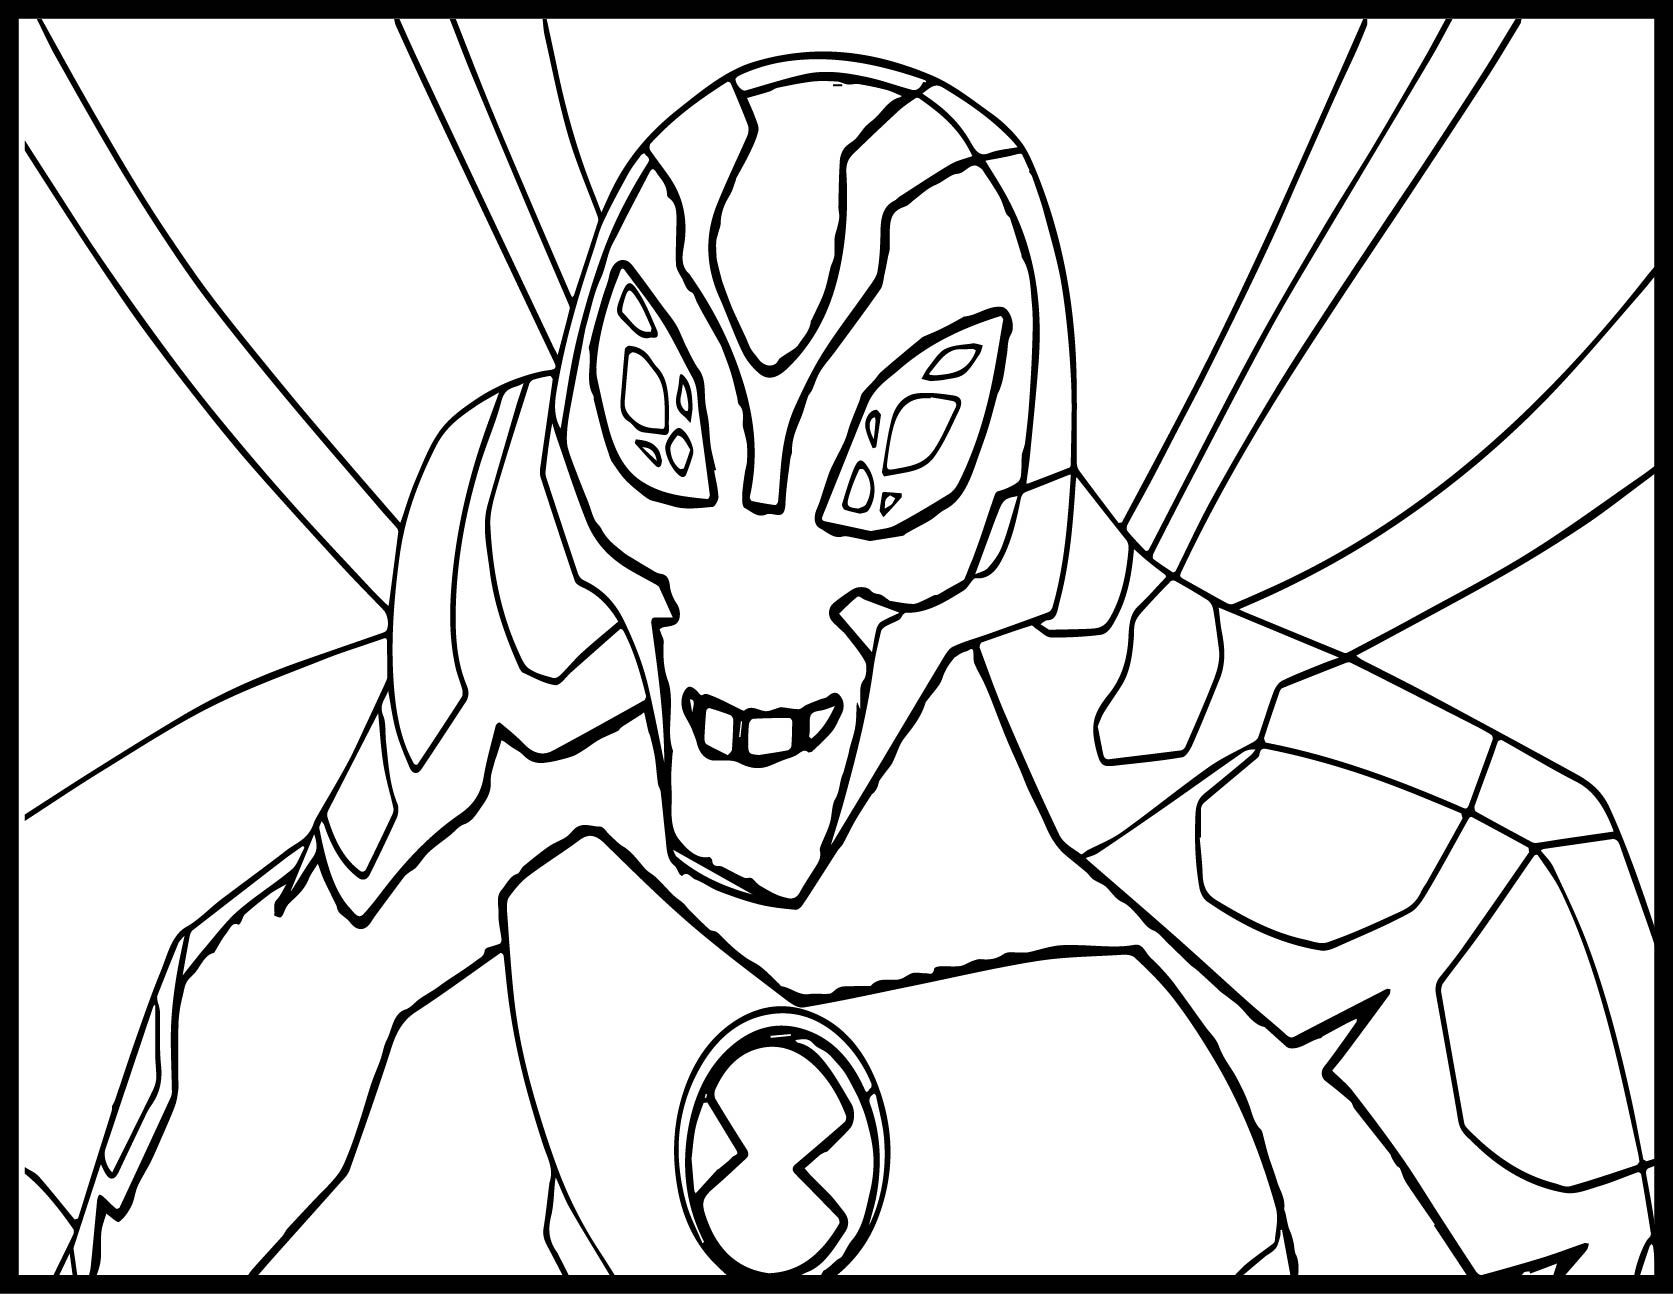 Cool Ben Ten Alien Force Big Chill By Flutterfly Coloring Page Monkey Coloring Pages Coloring Pages Big Chill